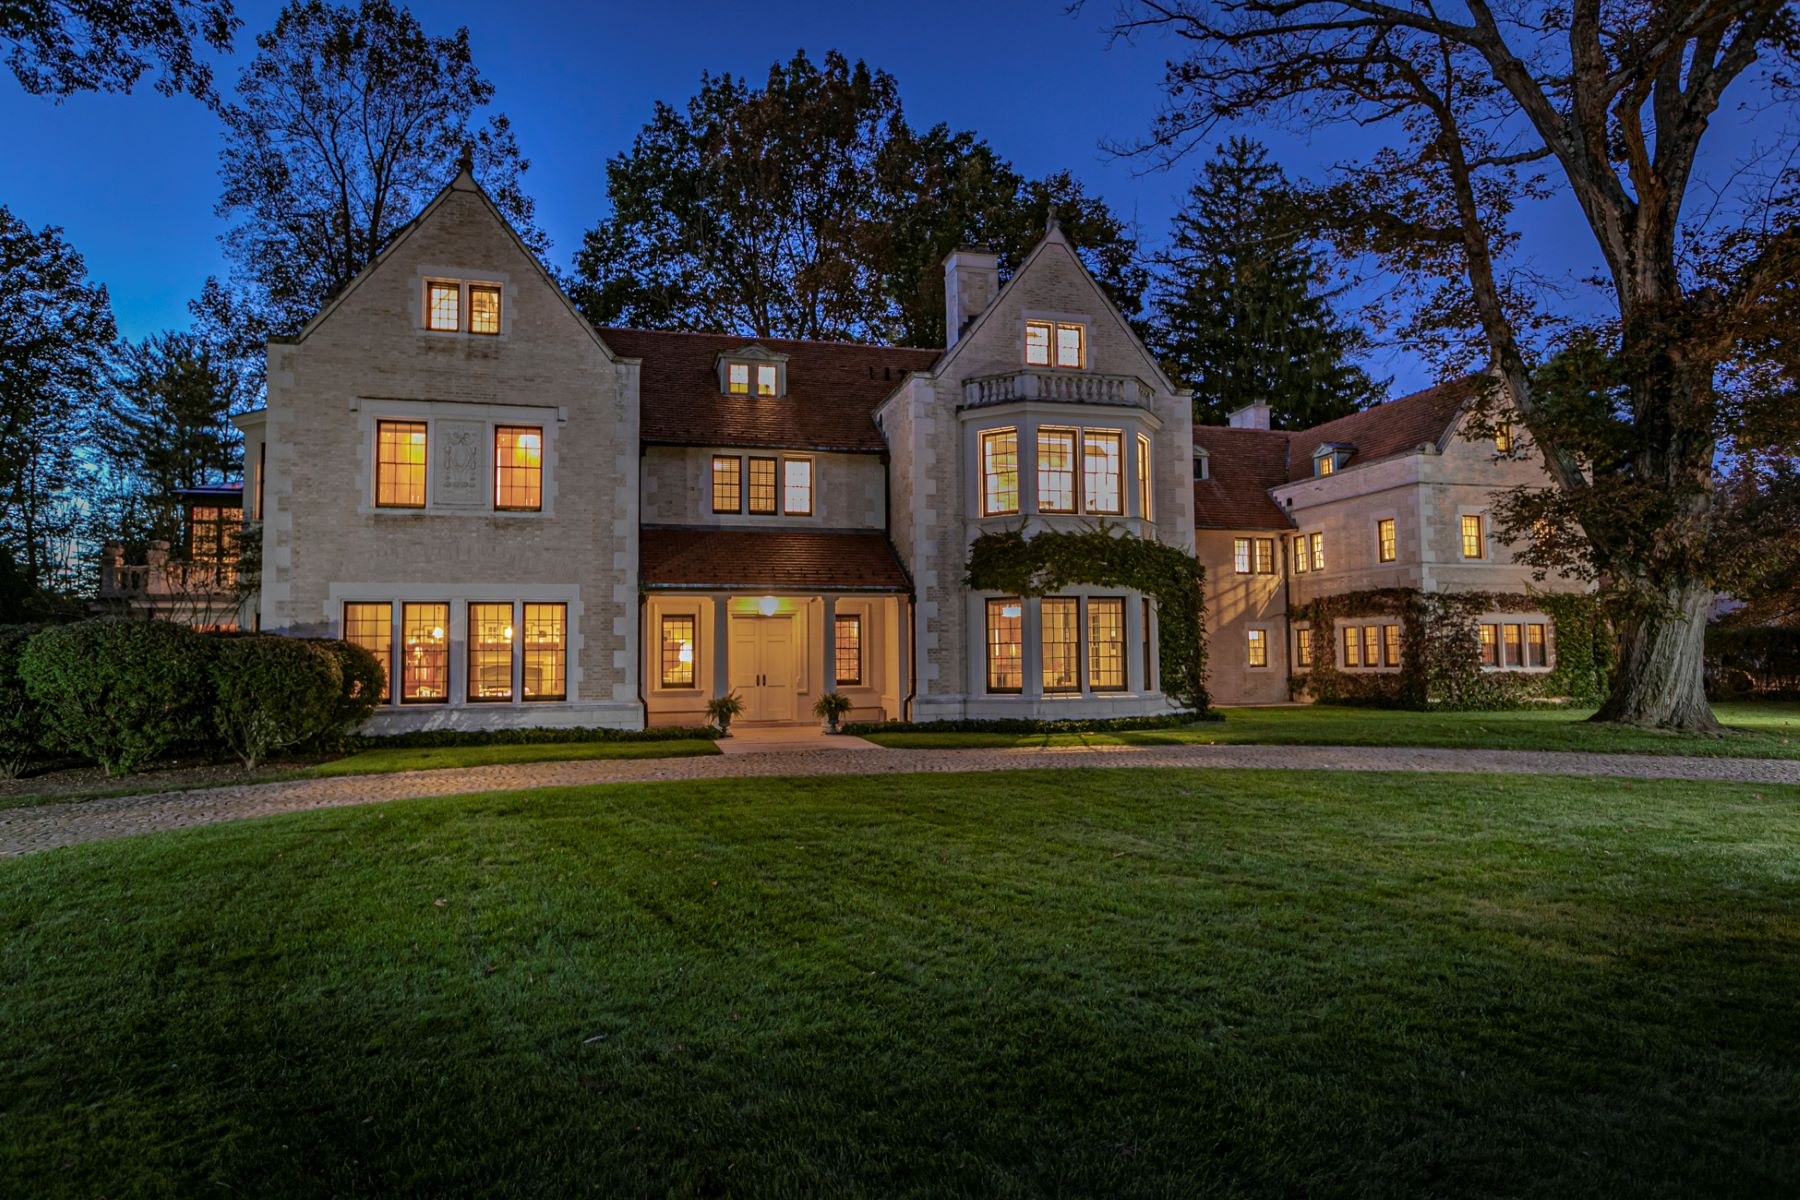 Single Family Homes por un Venta en Historic Pyne Mansion 211 Winant Road, Princeton, Nueva Jersey 08540 Estados Unidos